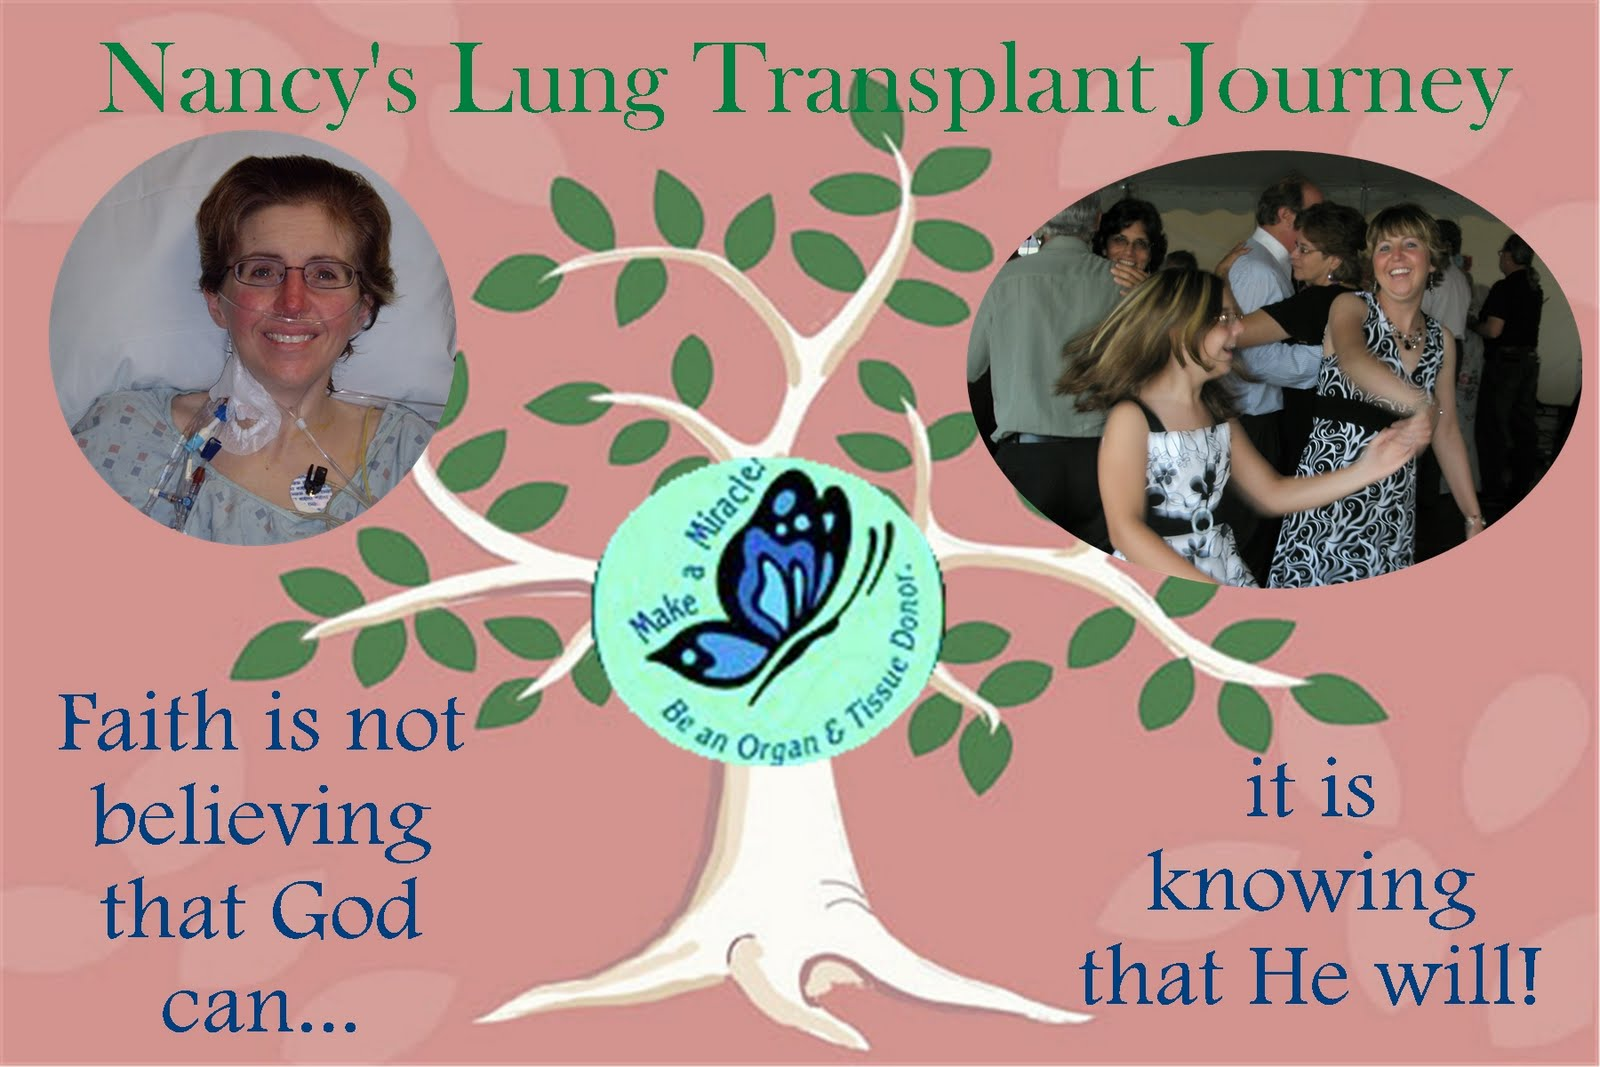 Nancy's Lung Transplant Journey